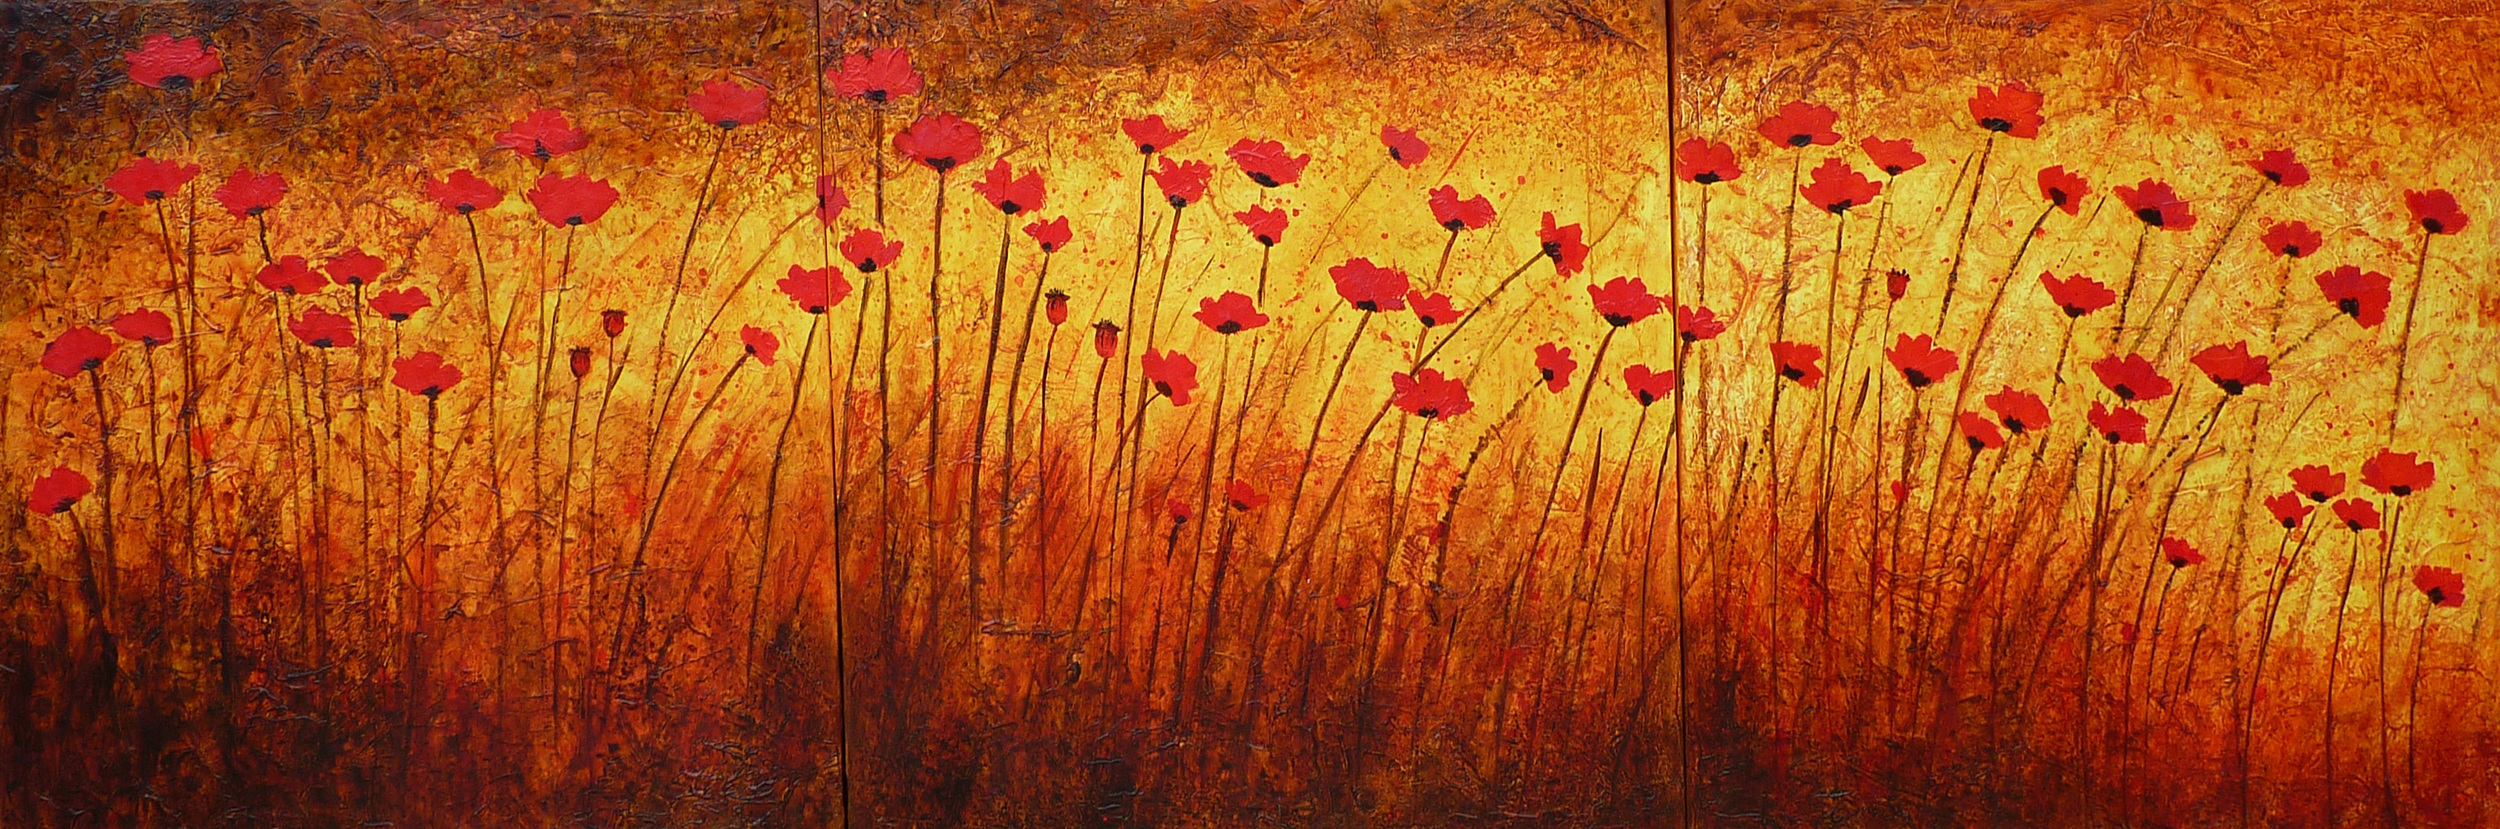 Poppies in the Wild Acrylic 36 x 108 Triptych